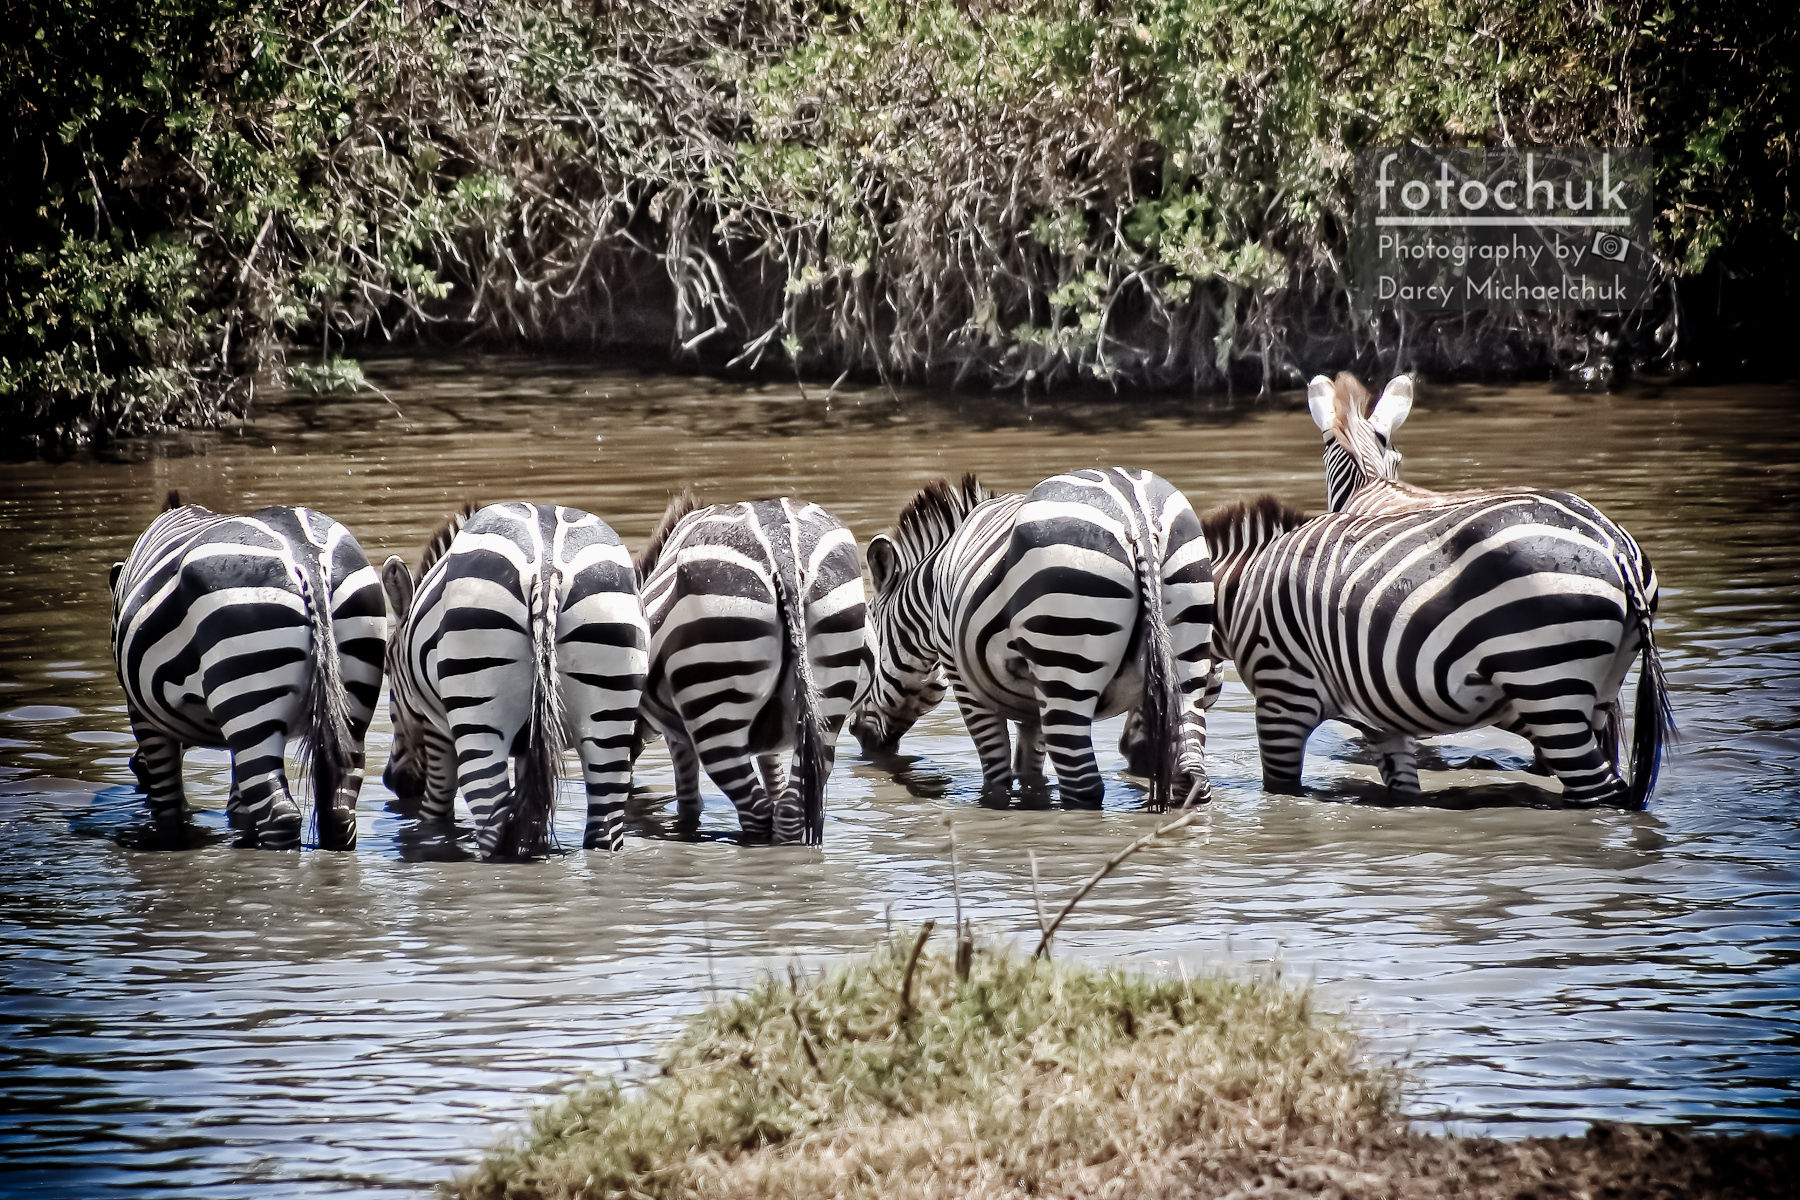 Group of Zebra Cautiously Drinking